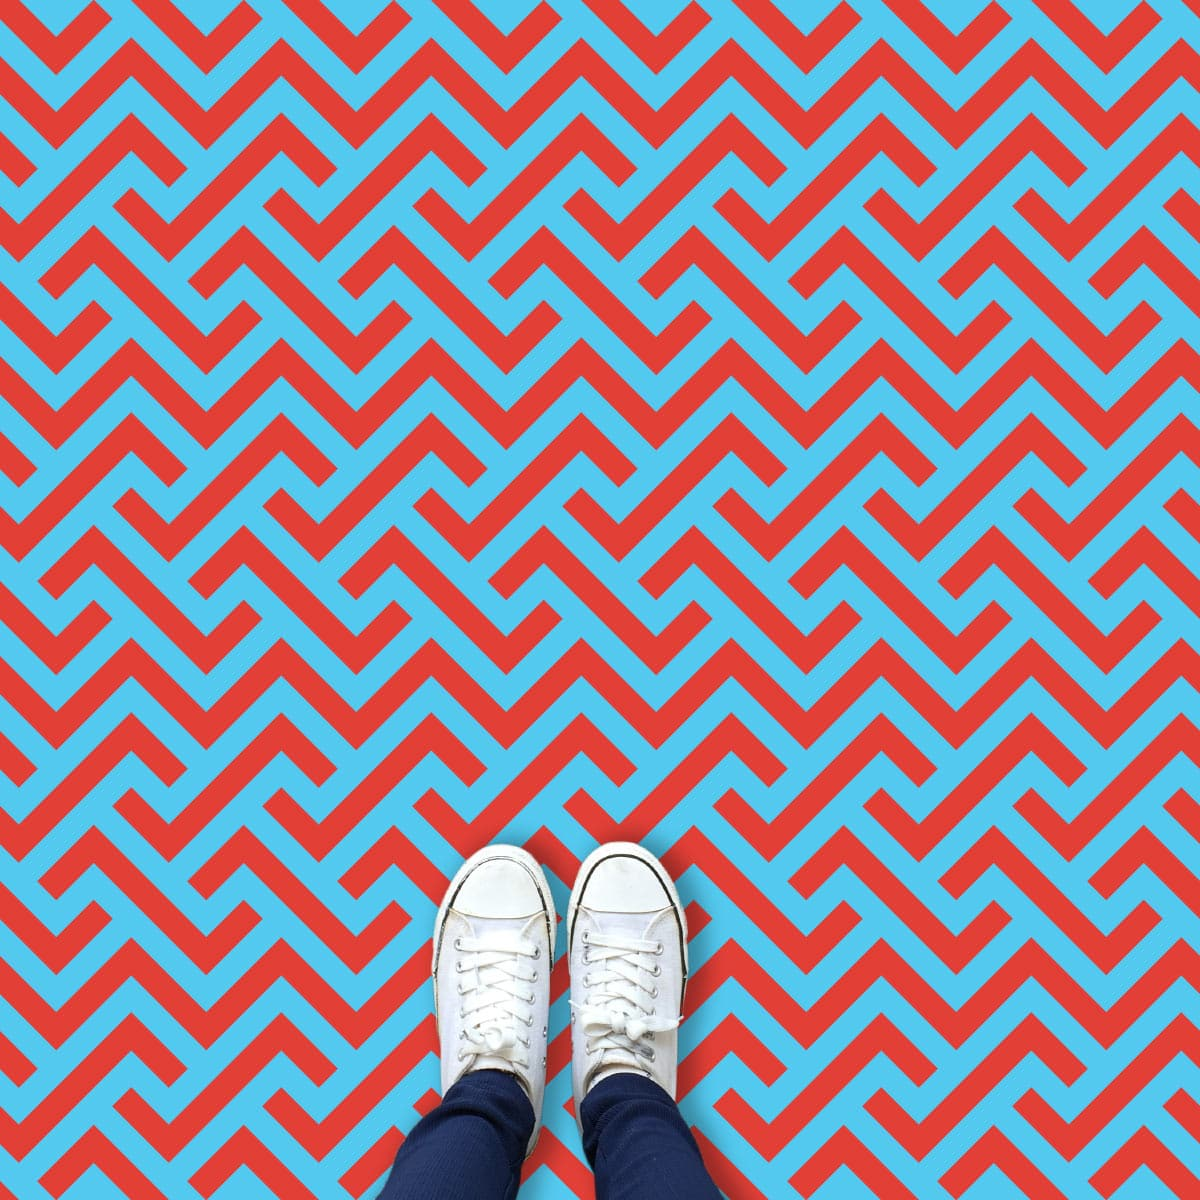 Vestra in Red parquet style pattern printed geometric design vinyl flooring exclusively from forthefloorandmore.com